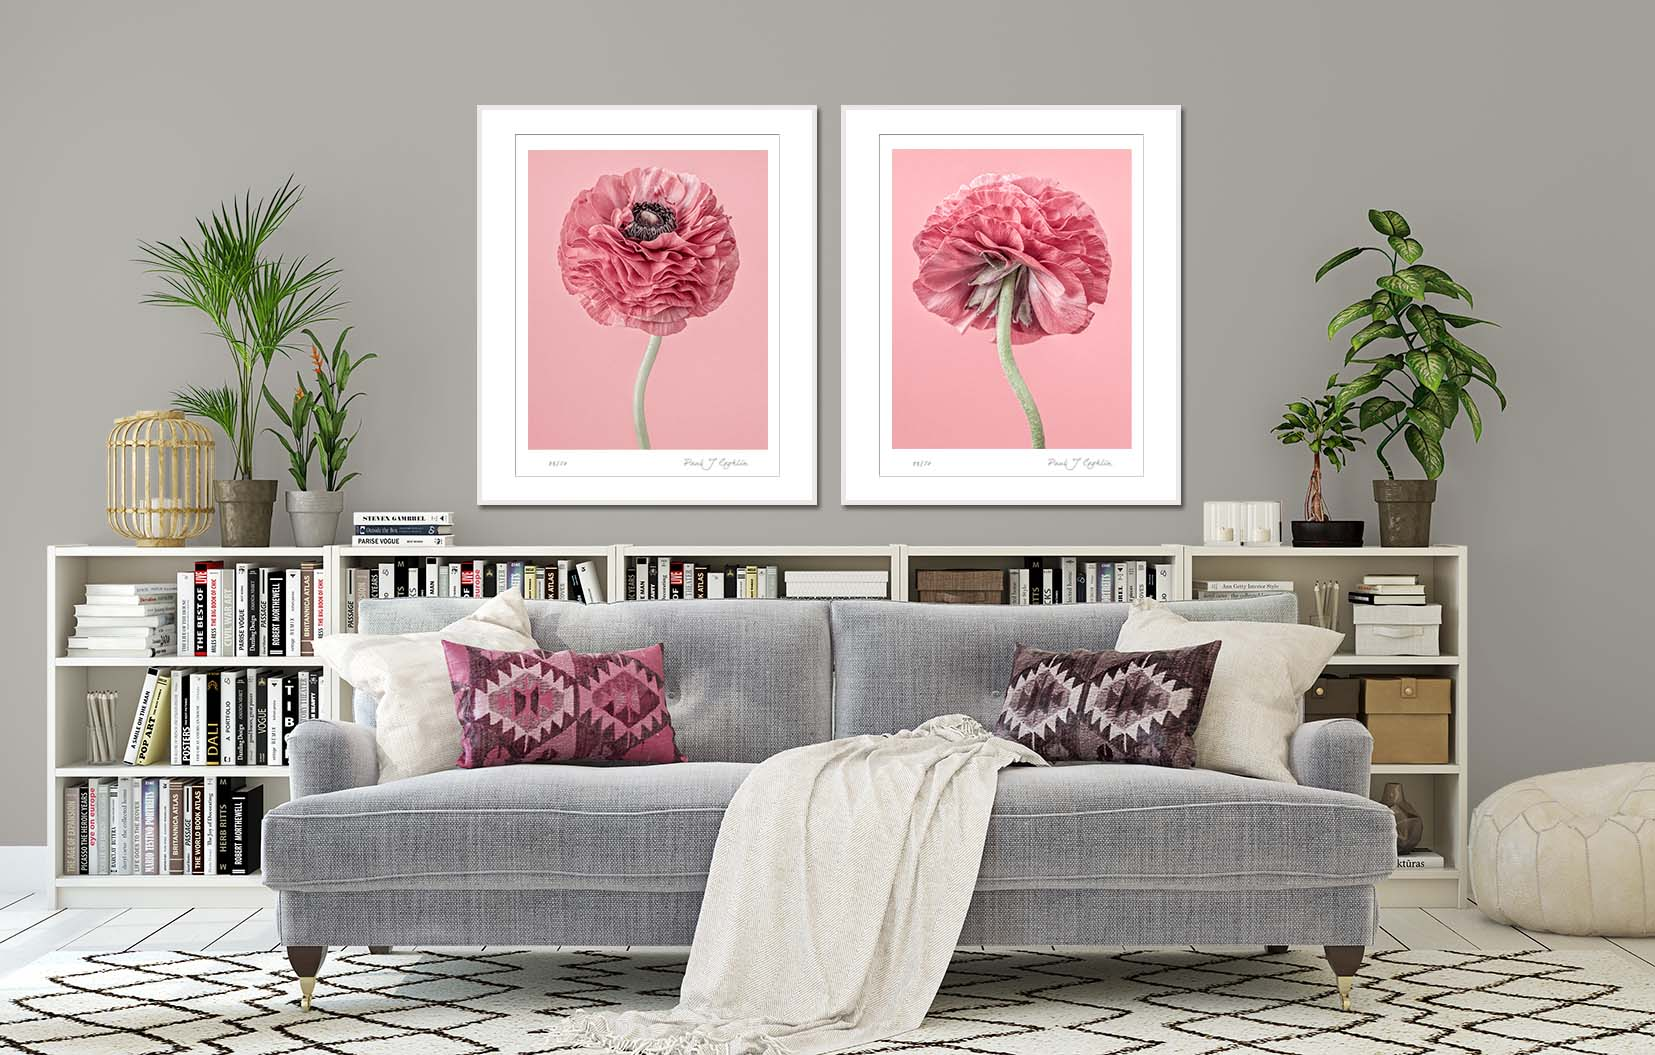 Pink Ranunclulus on a pink background. Limited edition botanical prints by fine art photographer Paul Coghlin.